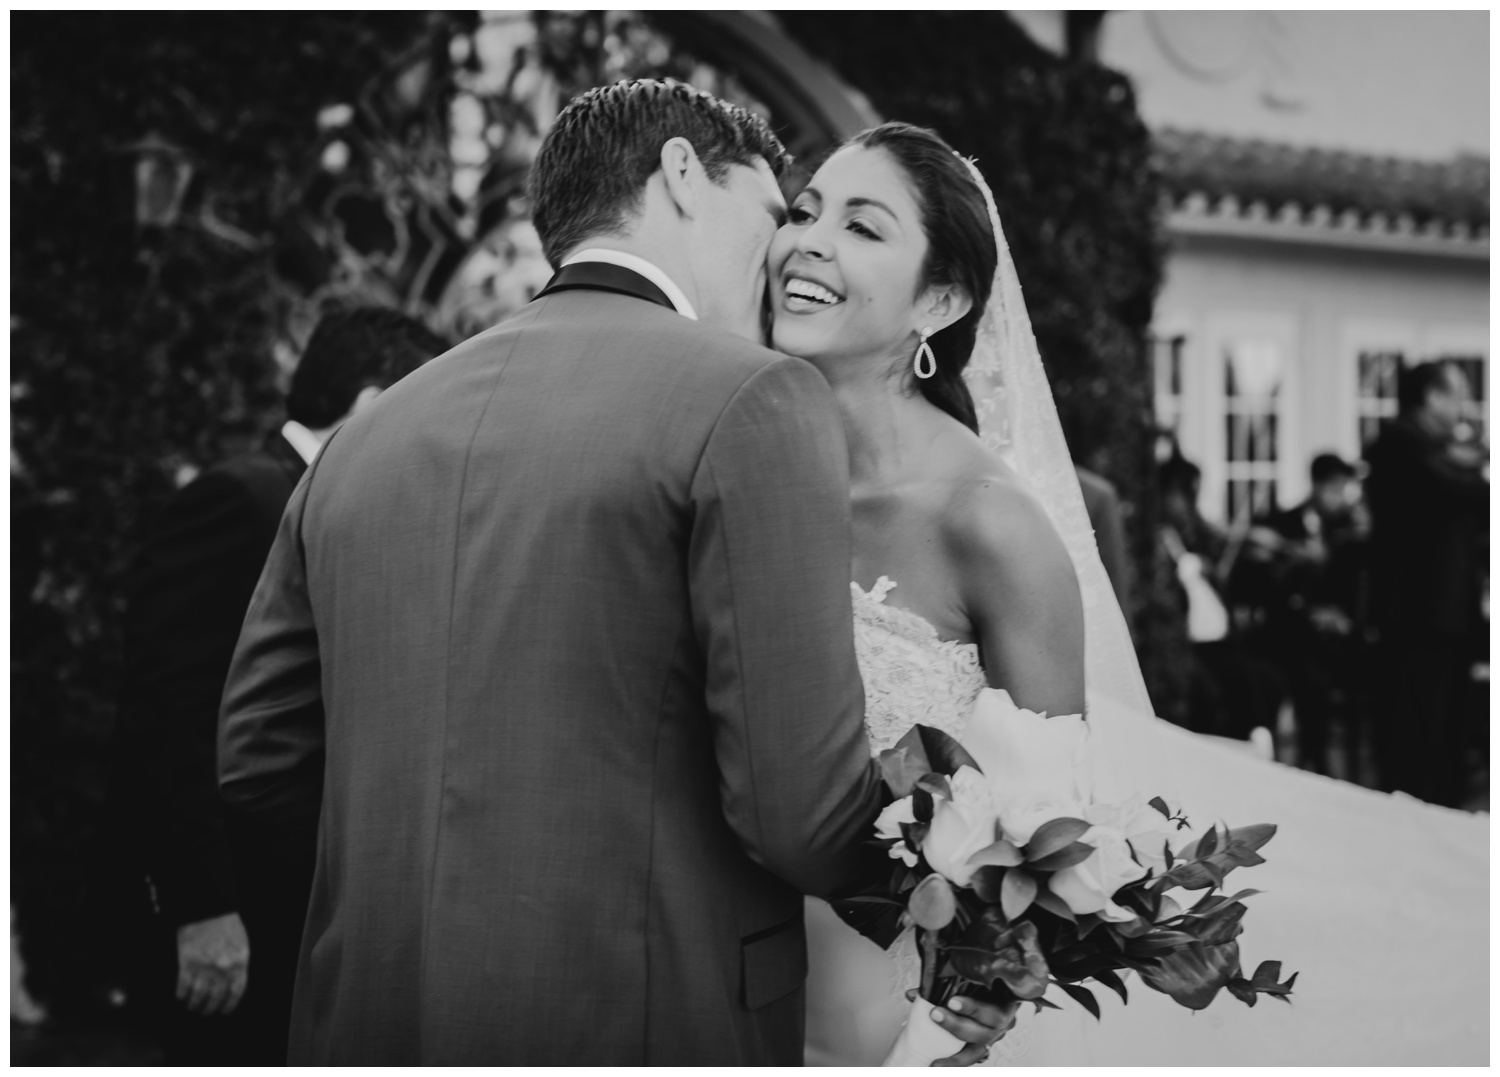 adriana_rivera_miranda_weddings_el_salvador_14.jpg